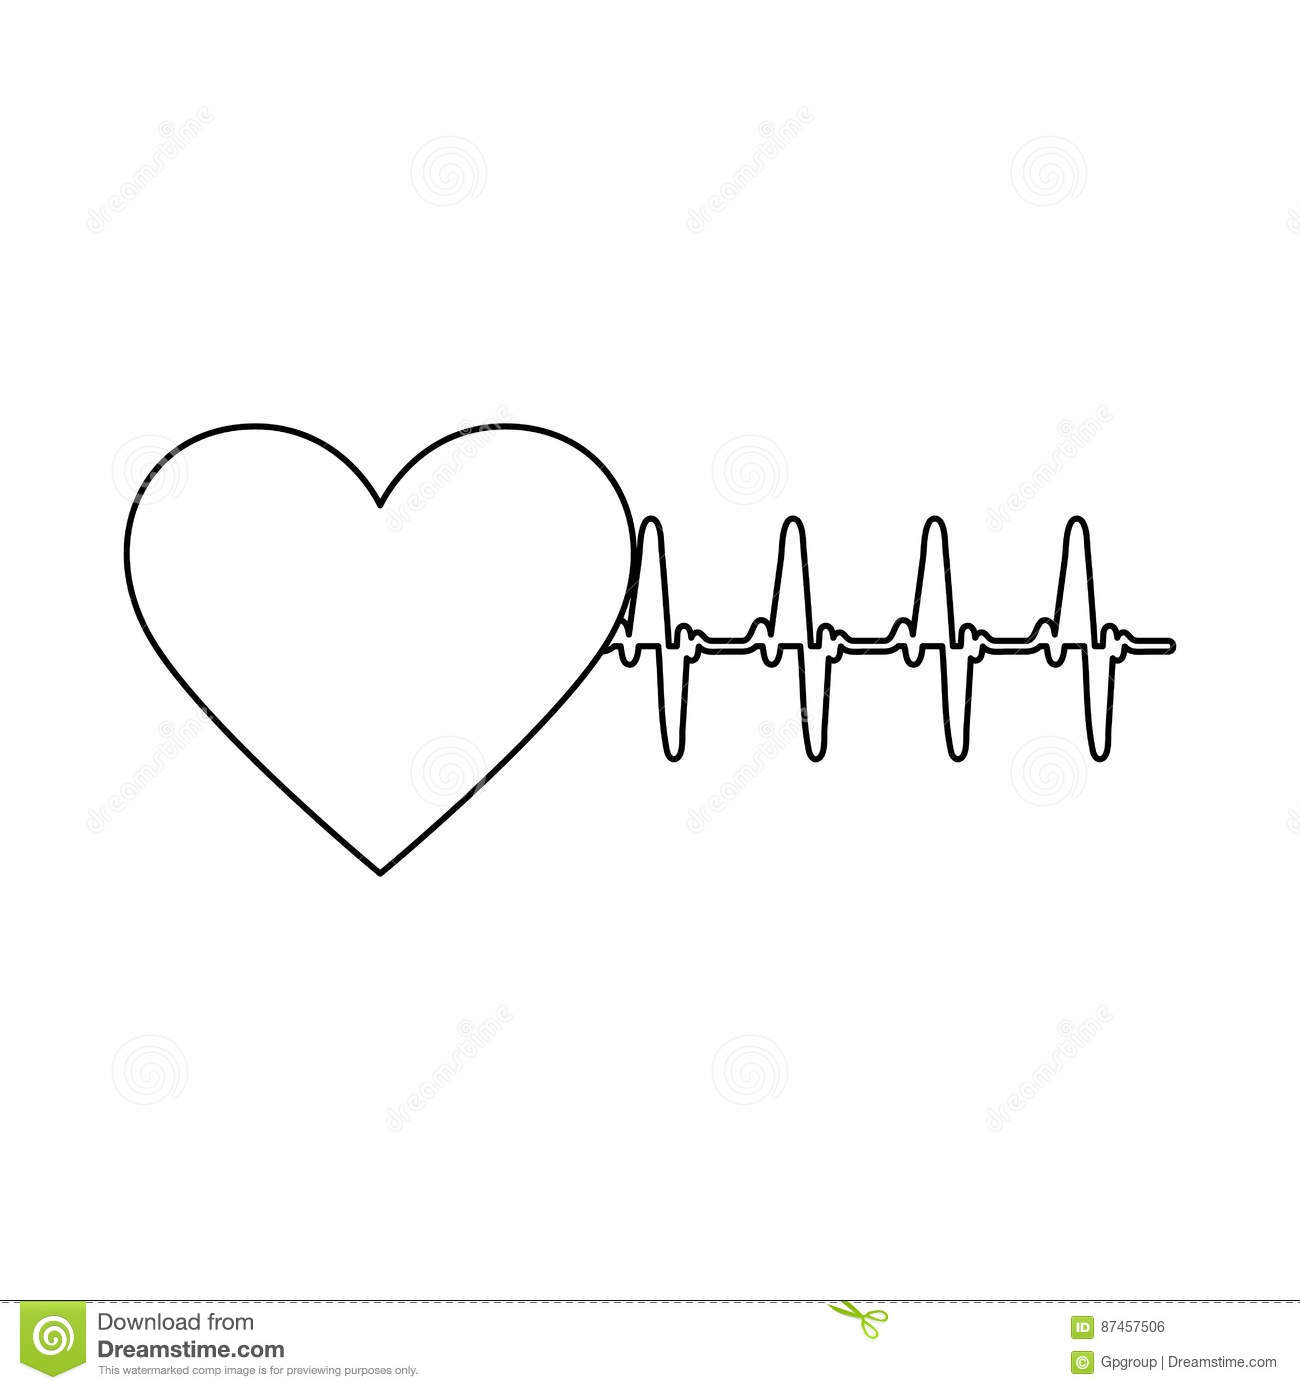 silhouette heart shape with beats and signs life